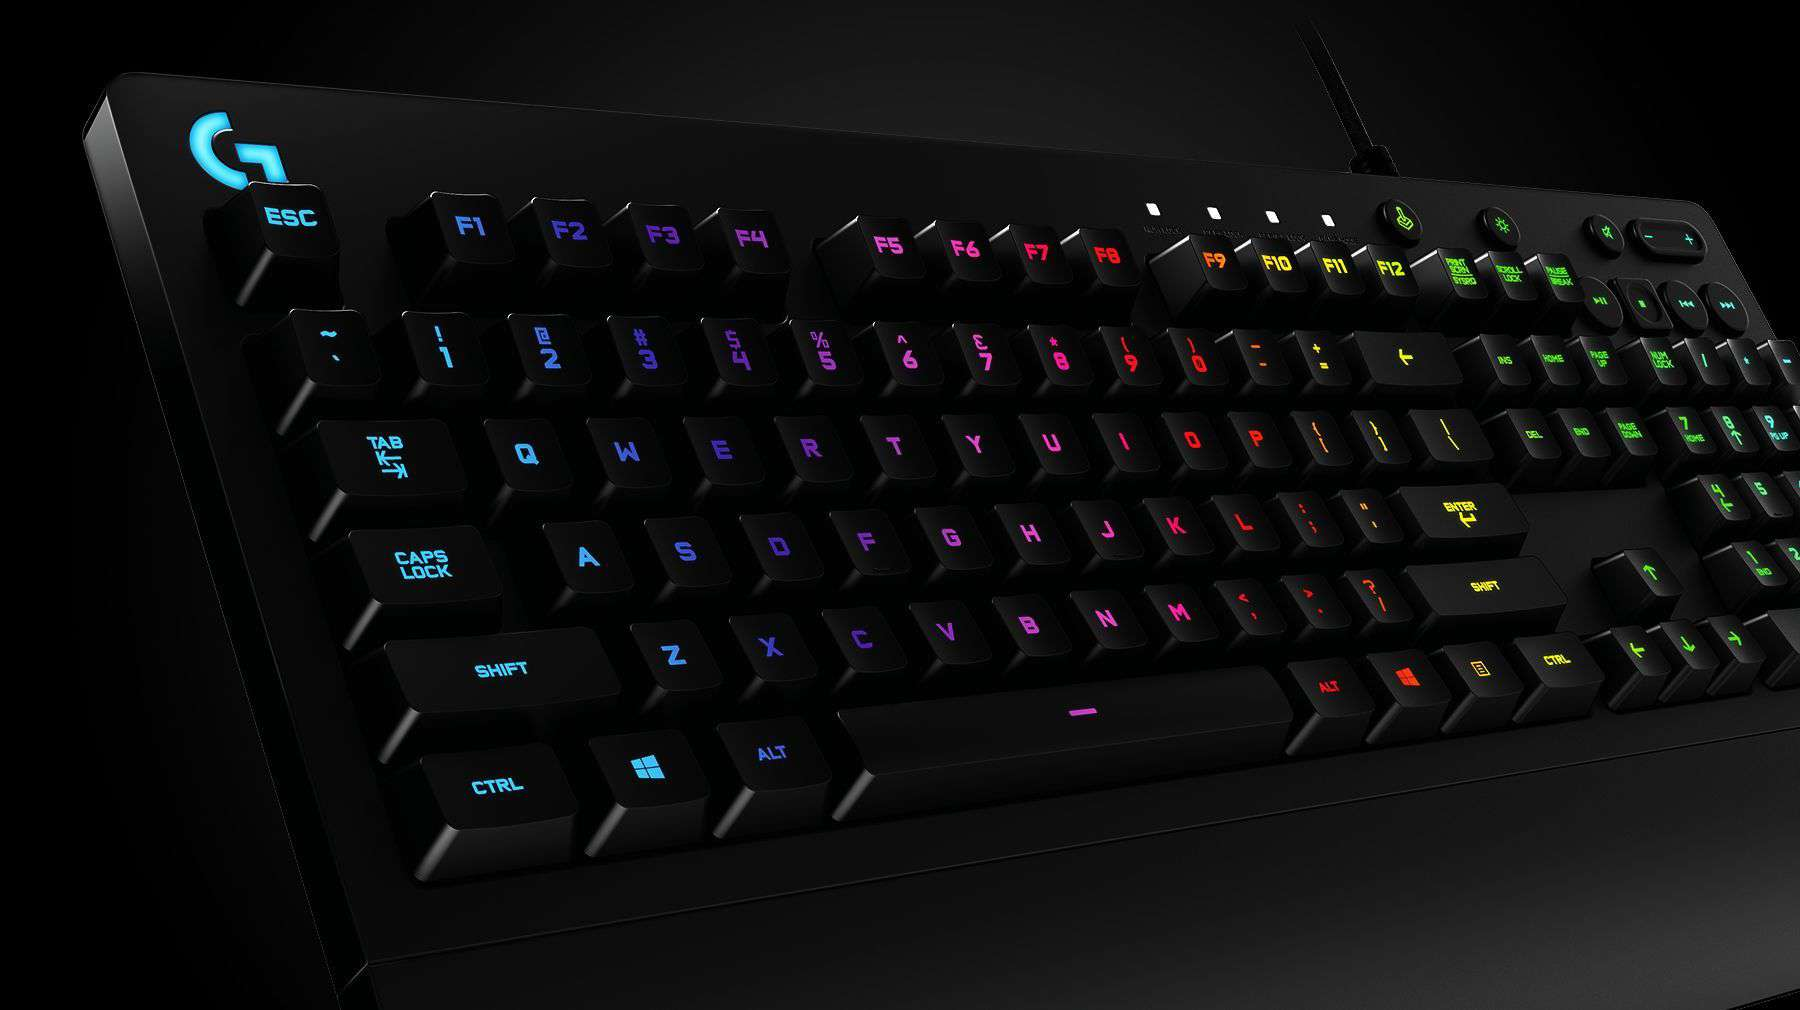 Logitech G213 gaming USB keyboard